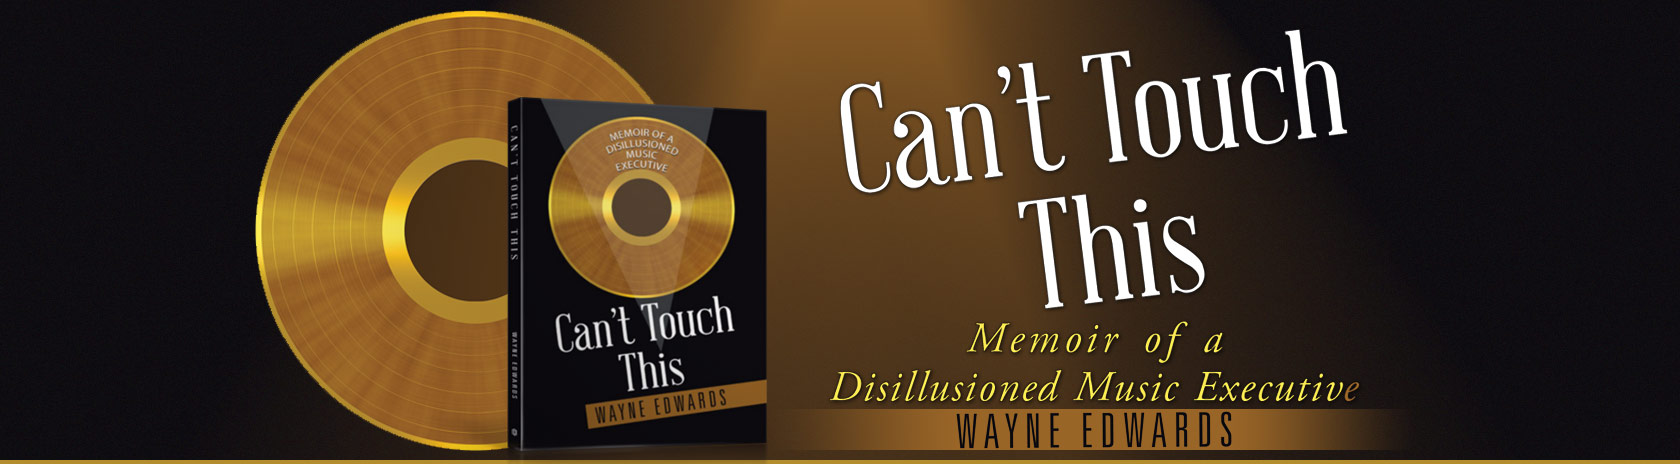 Can't Touch This by Wayne Edwards